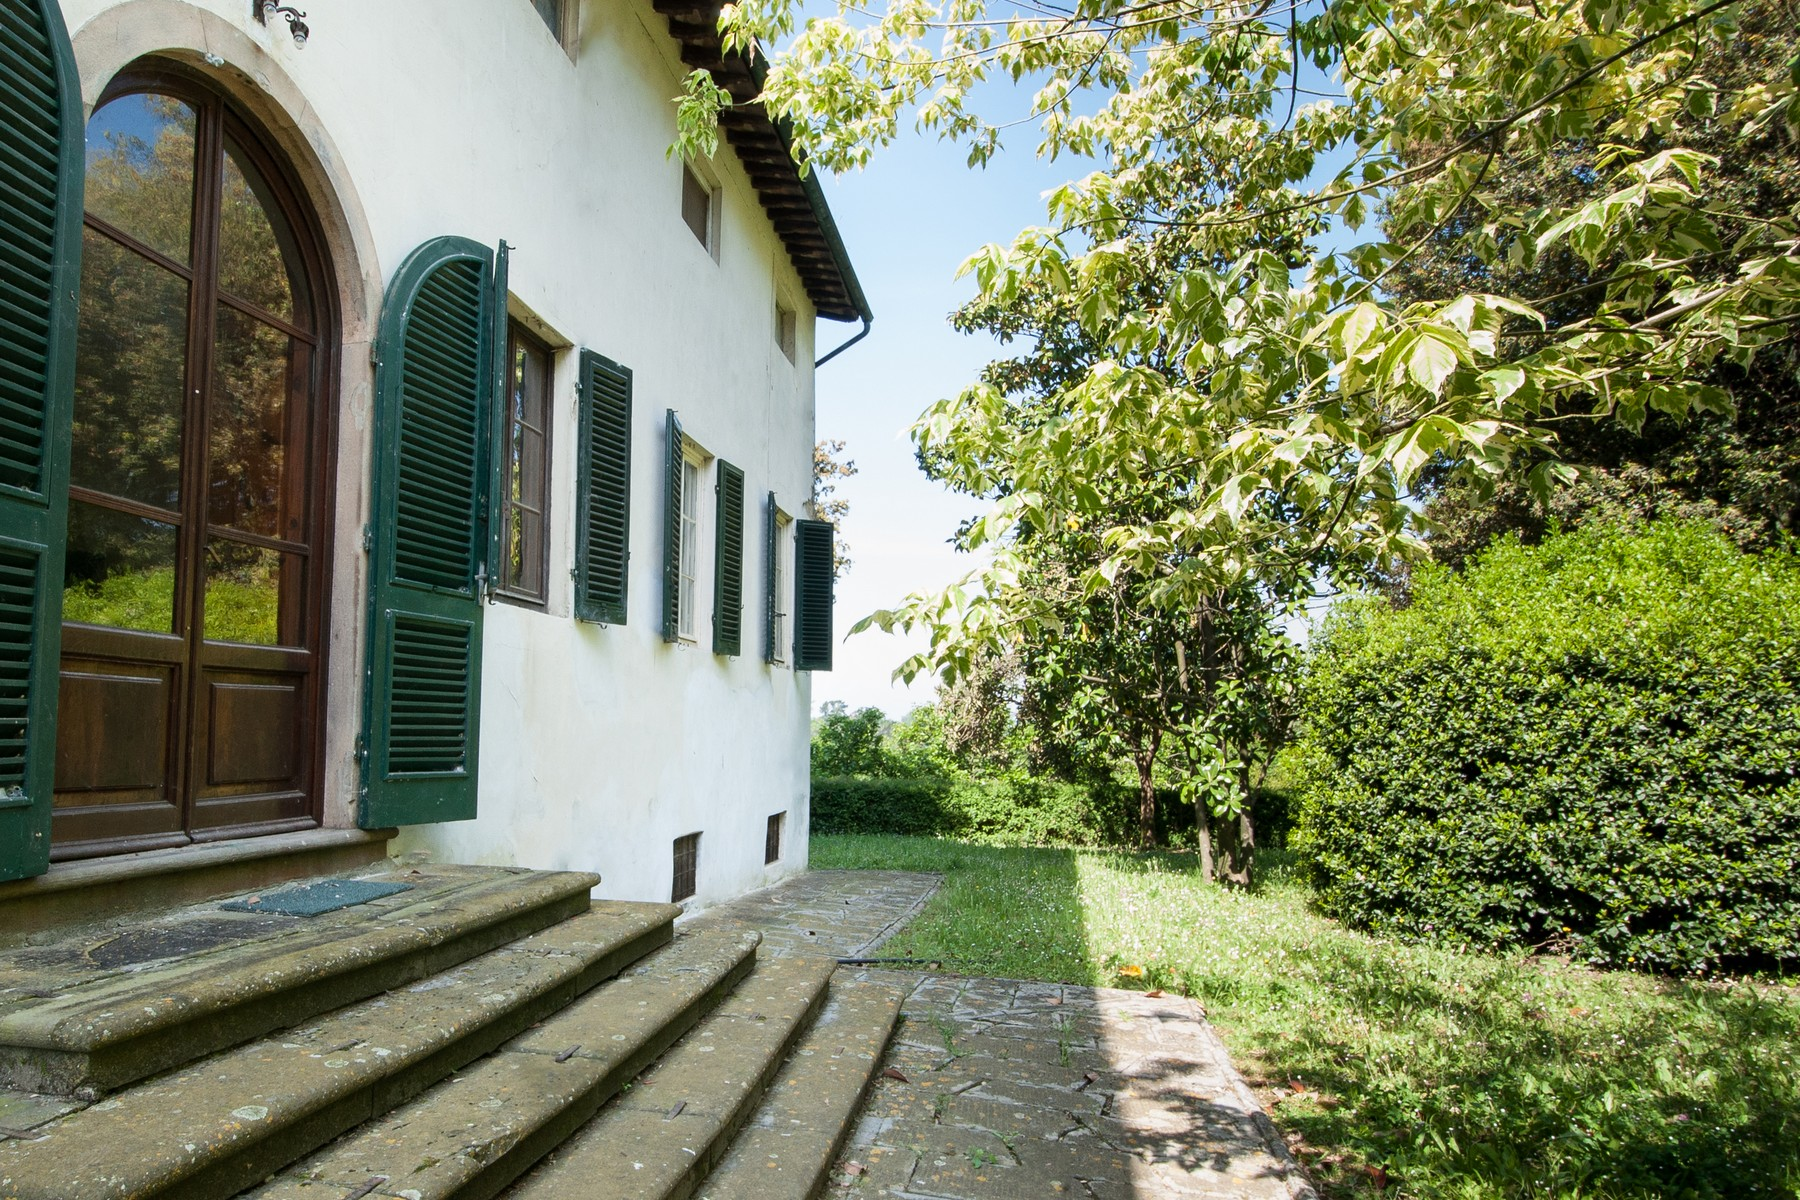 Additional photo for property listing at Beautiful villa in Lucca coutryside Gragnano Capannori, Lucca 55012 Italia